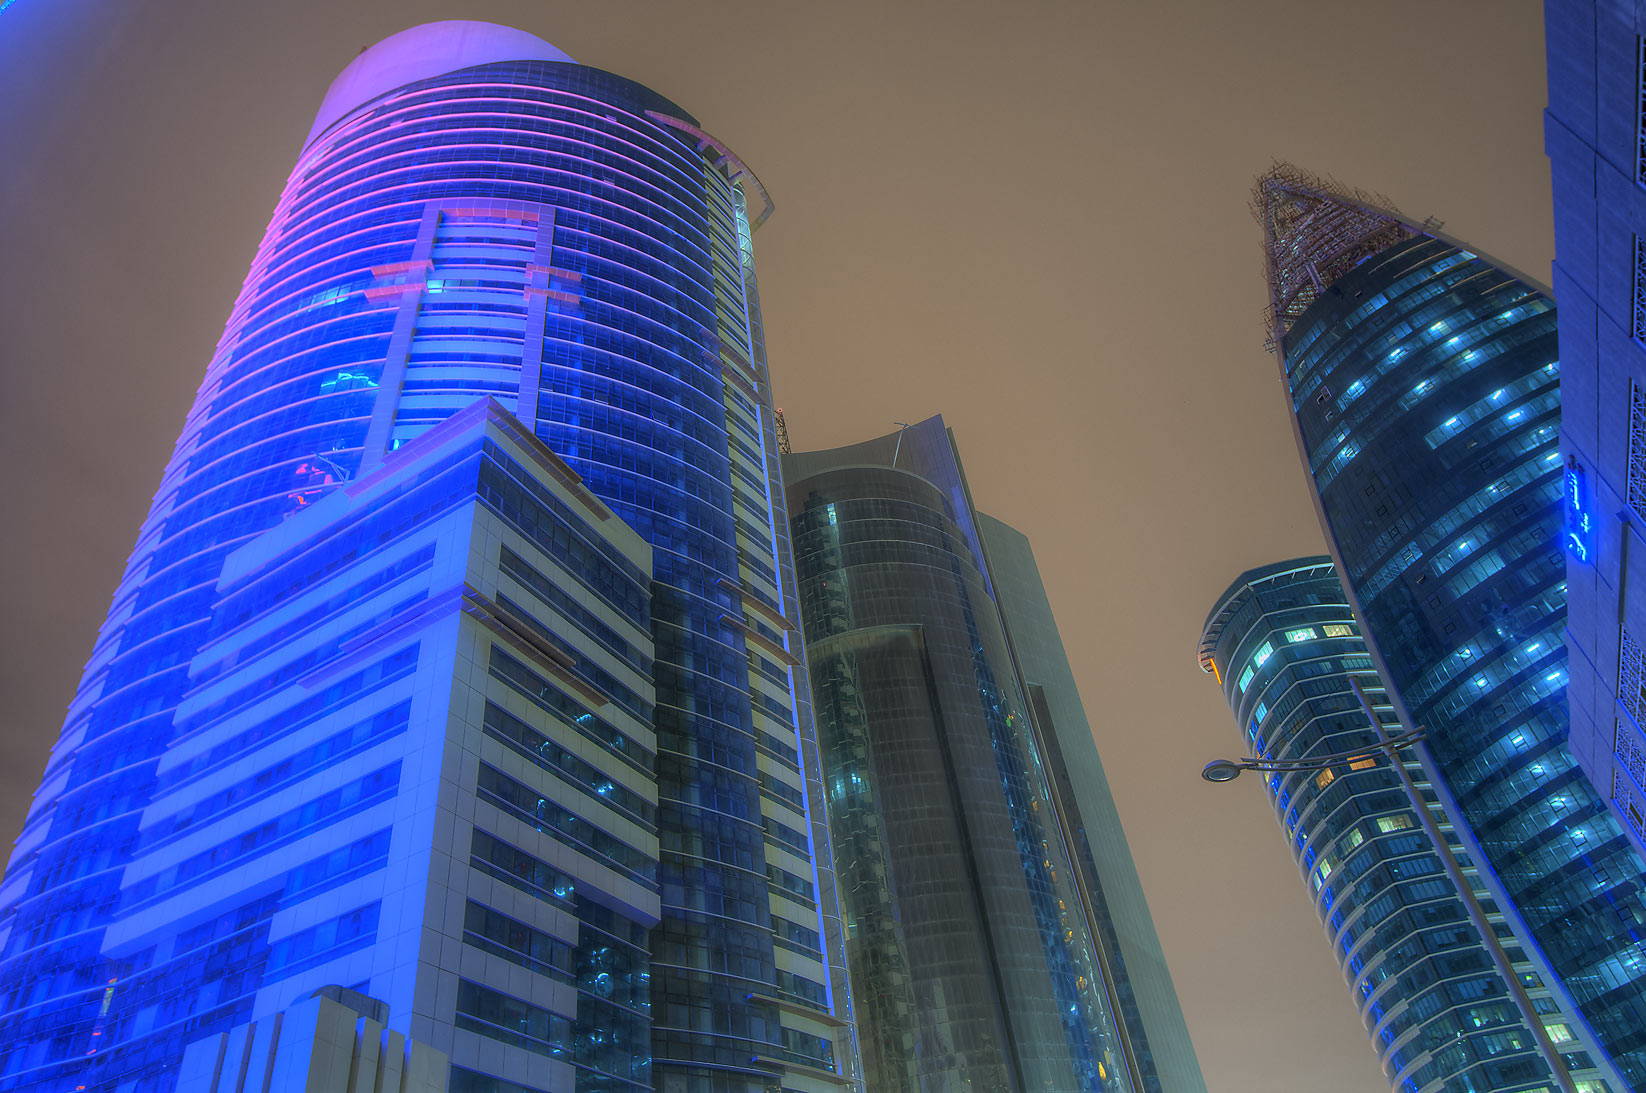 A street in West Bay north from Sheraton Roundabout. Doha, Qatar